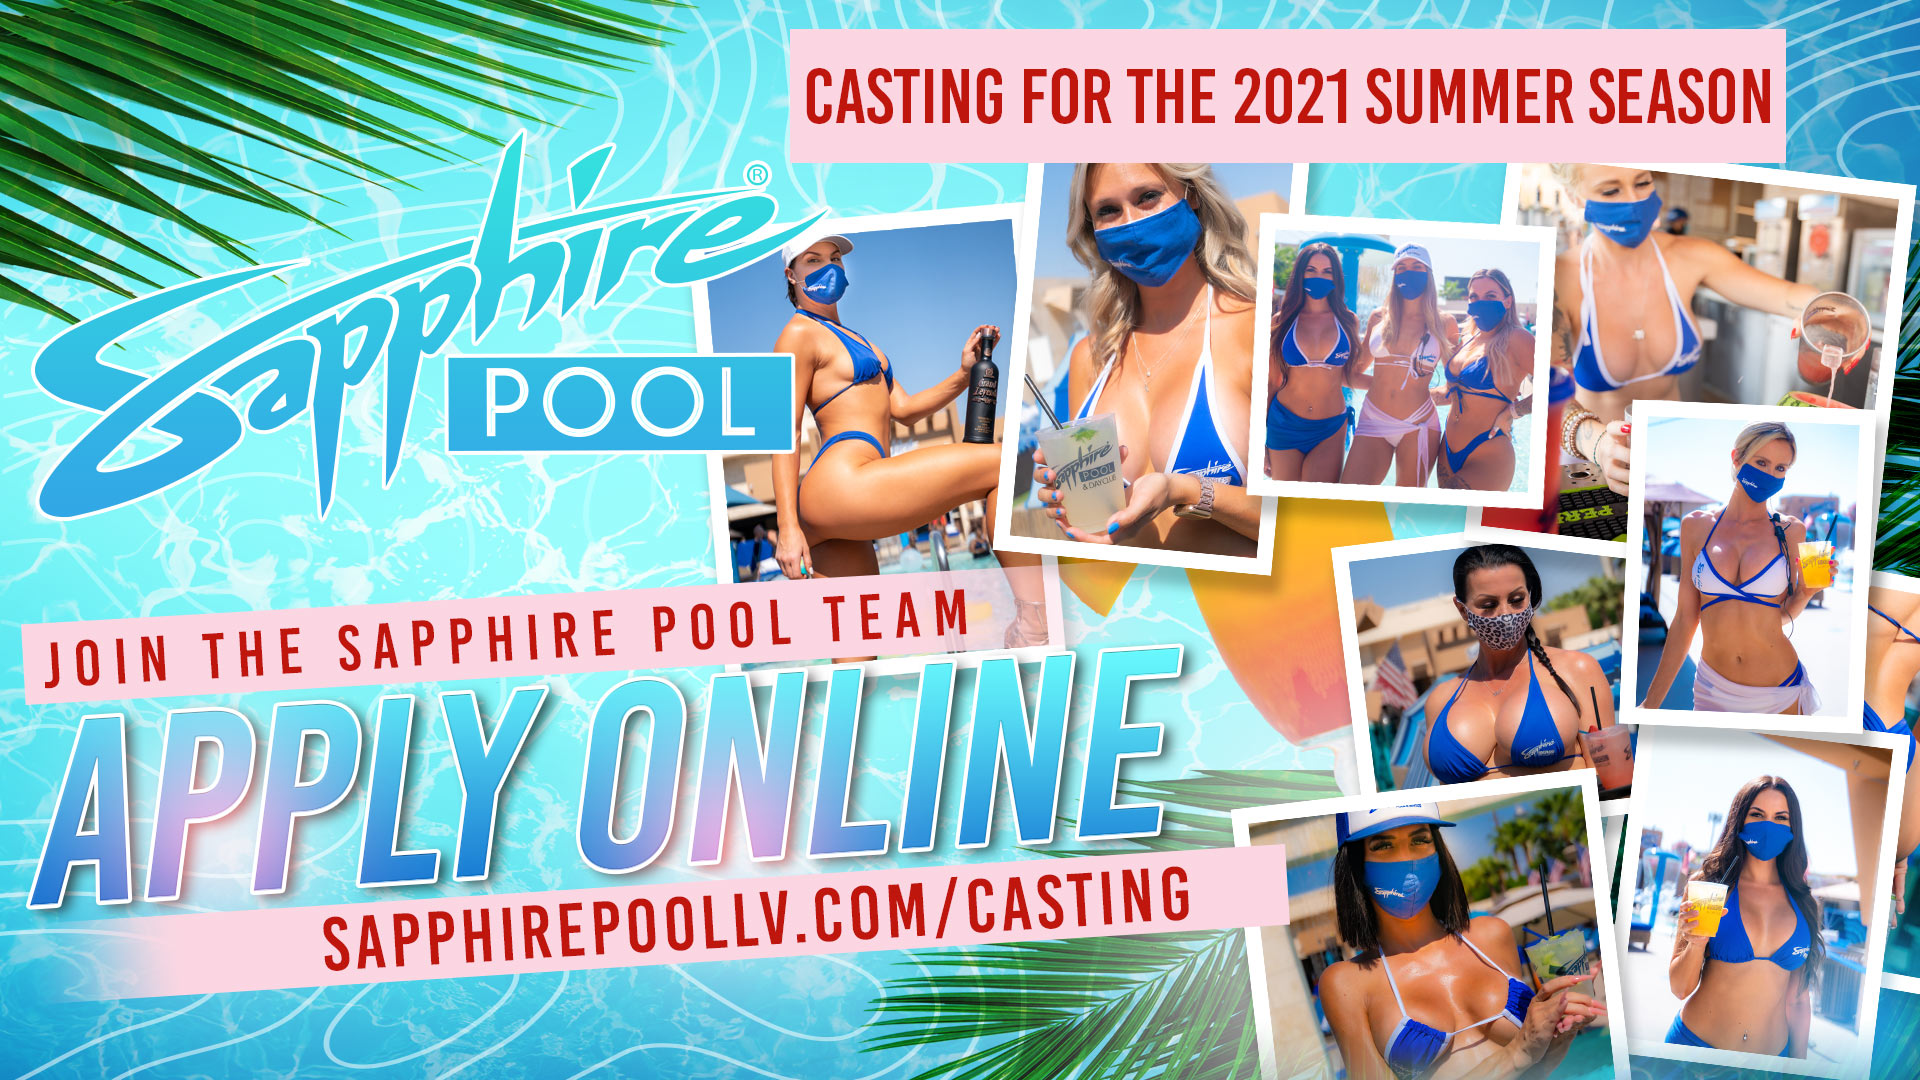 Sapphire Pool – Casting for the 2021 Summer Season